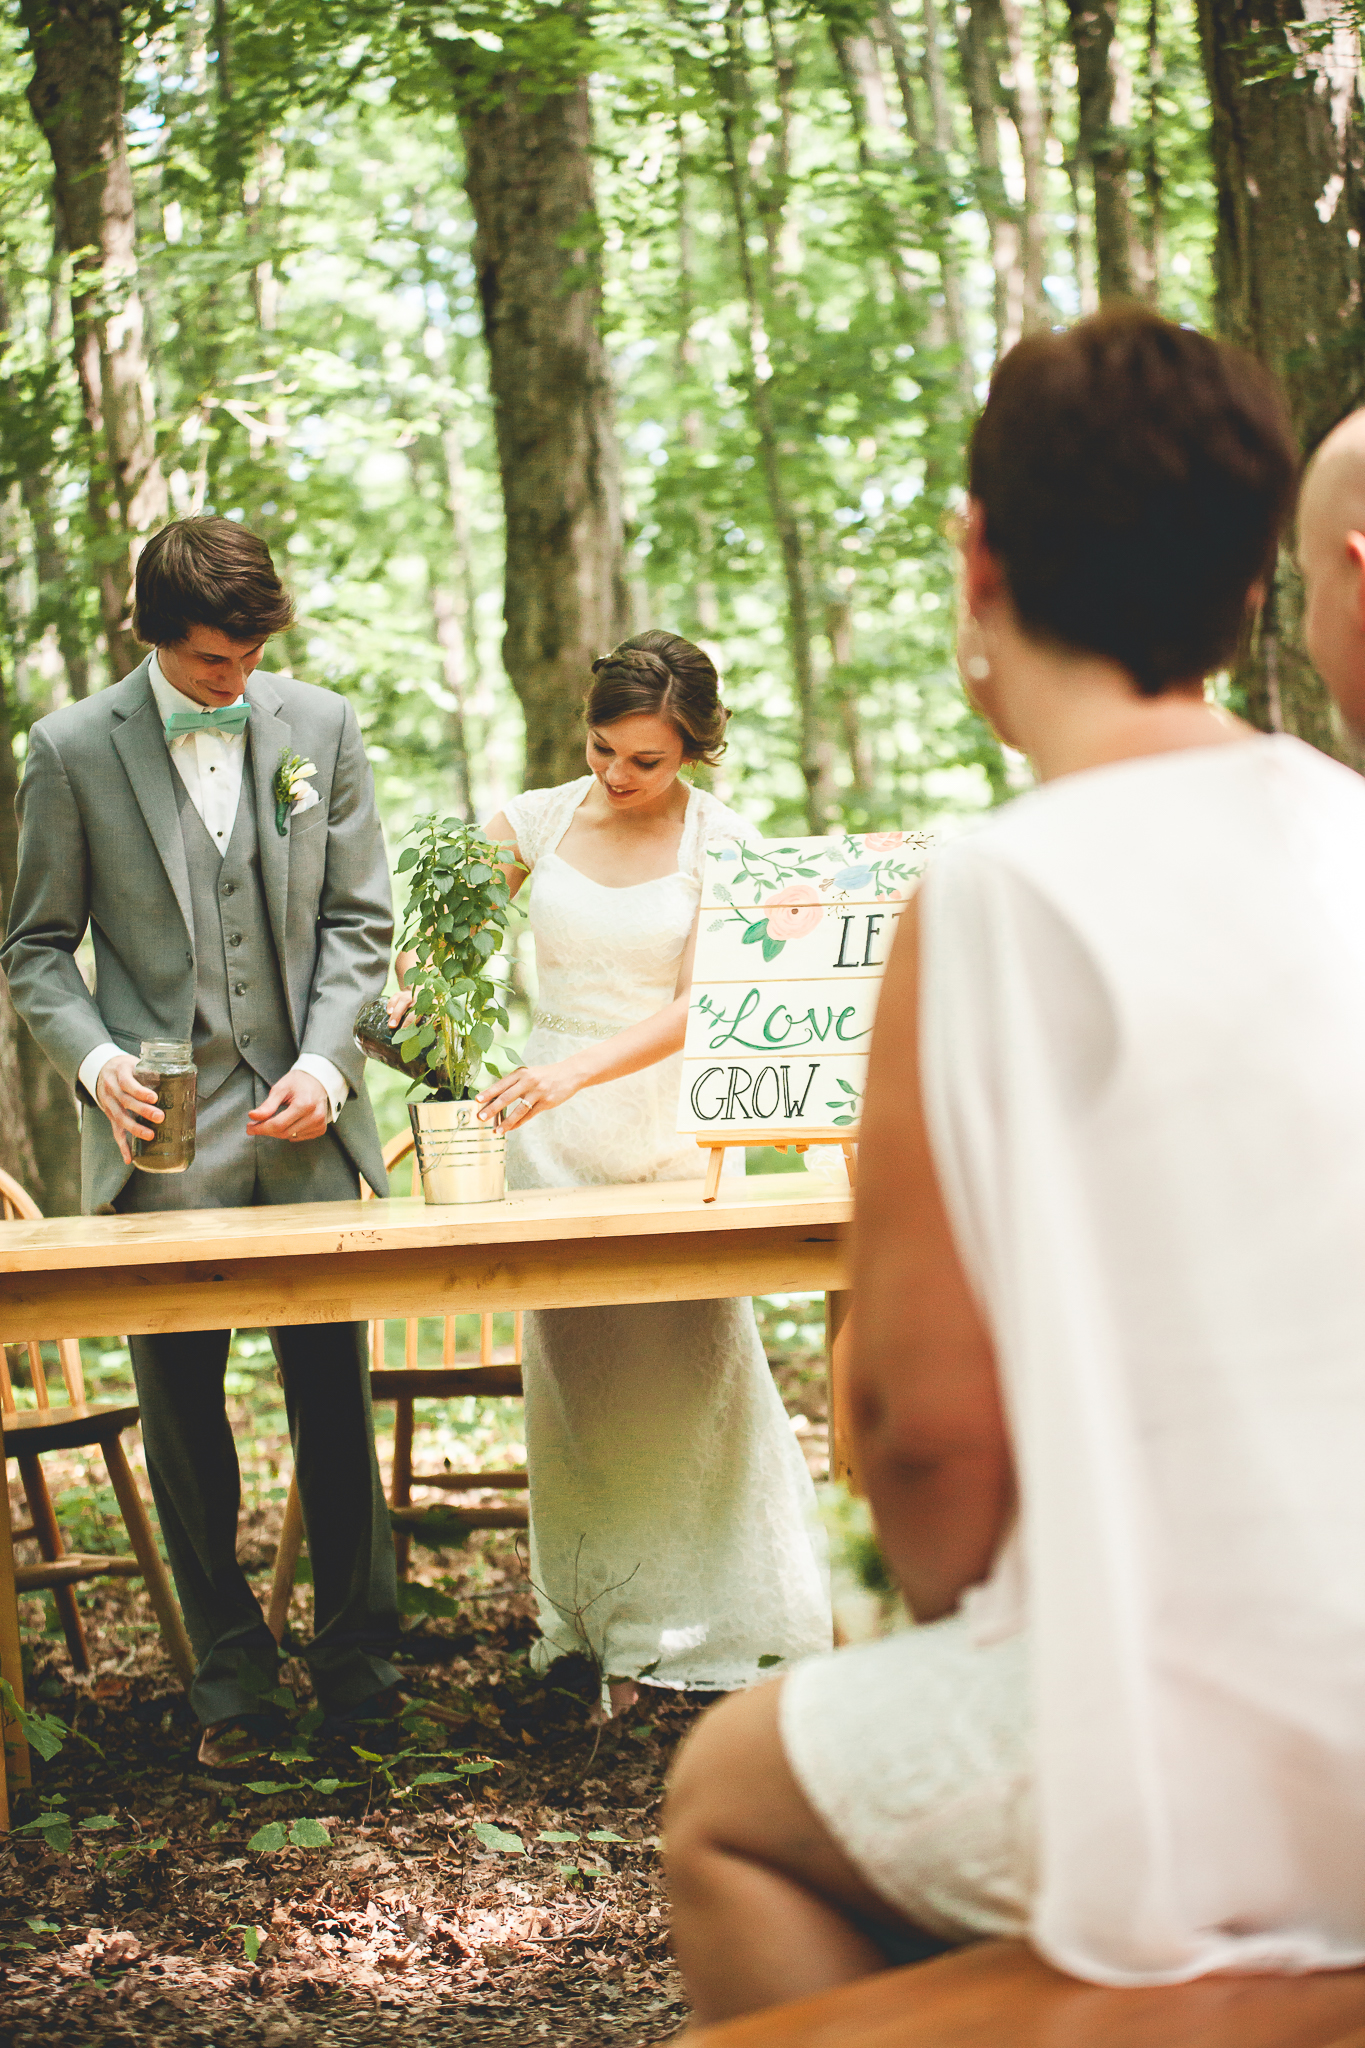 Amy D Photography- Barrie Wedding Photography- Wedding Photography Barrie- Forest Wedding - Forest Wedding Ceremony- Wedding Ceremony Ideas-87.jpg